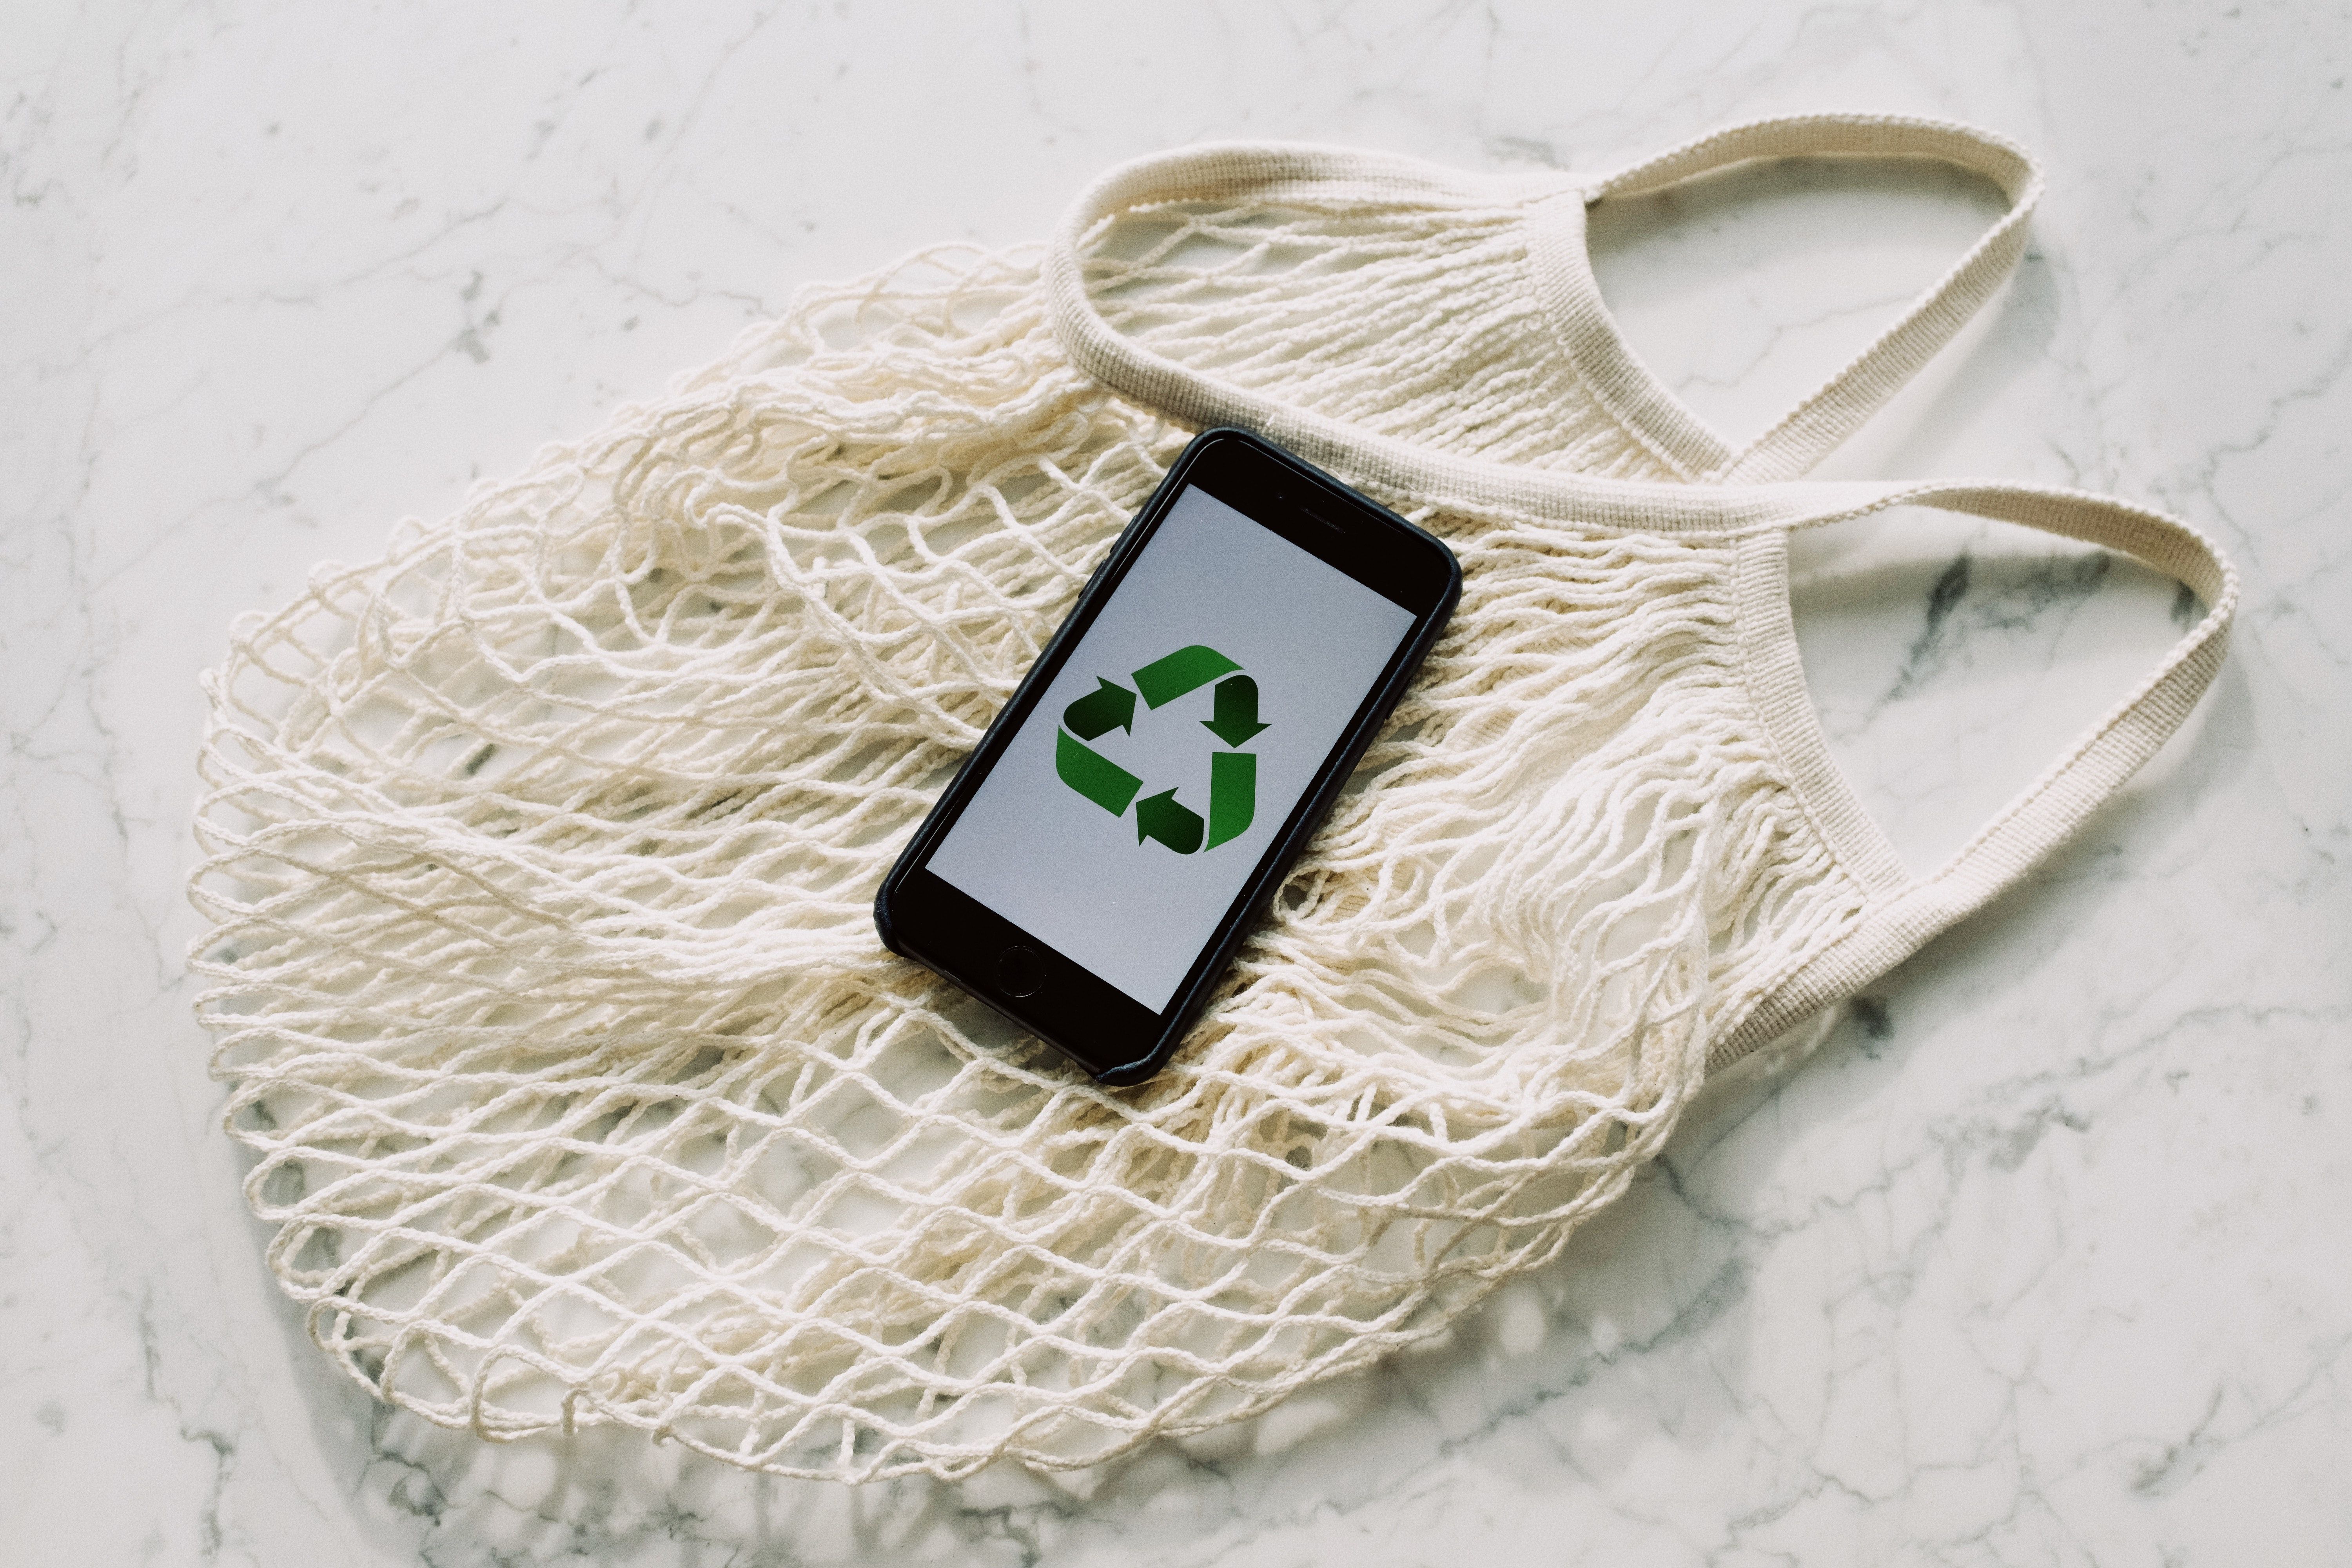 Image showing a smartphone with a recycle symbol on it